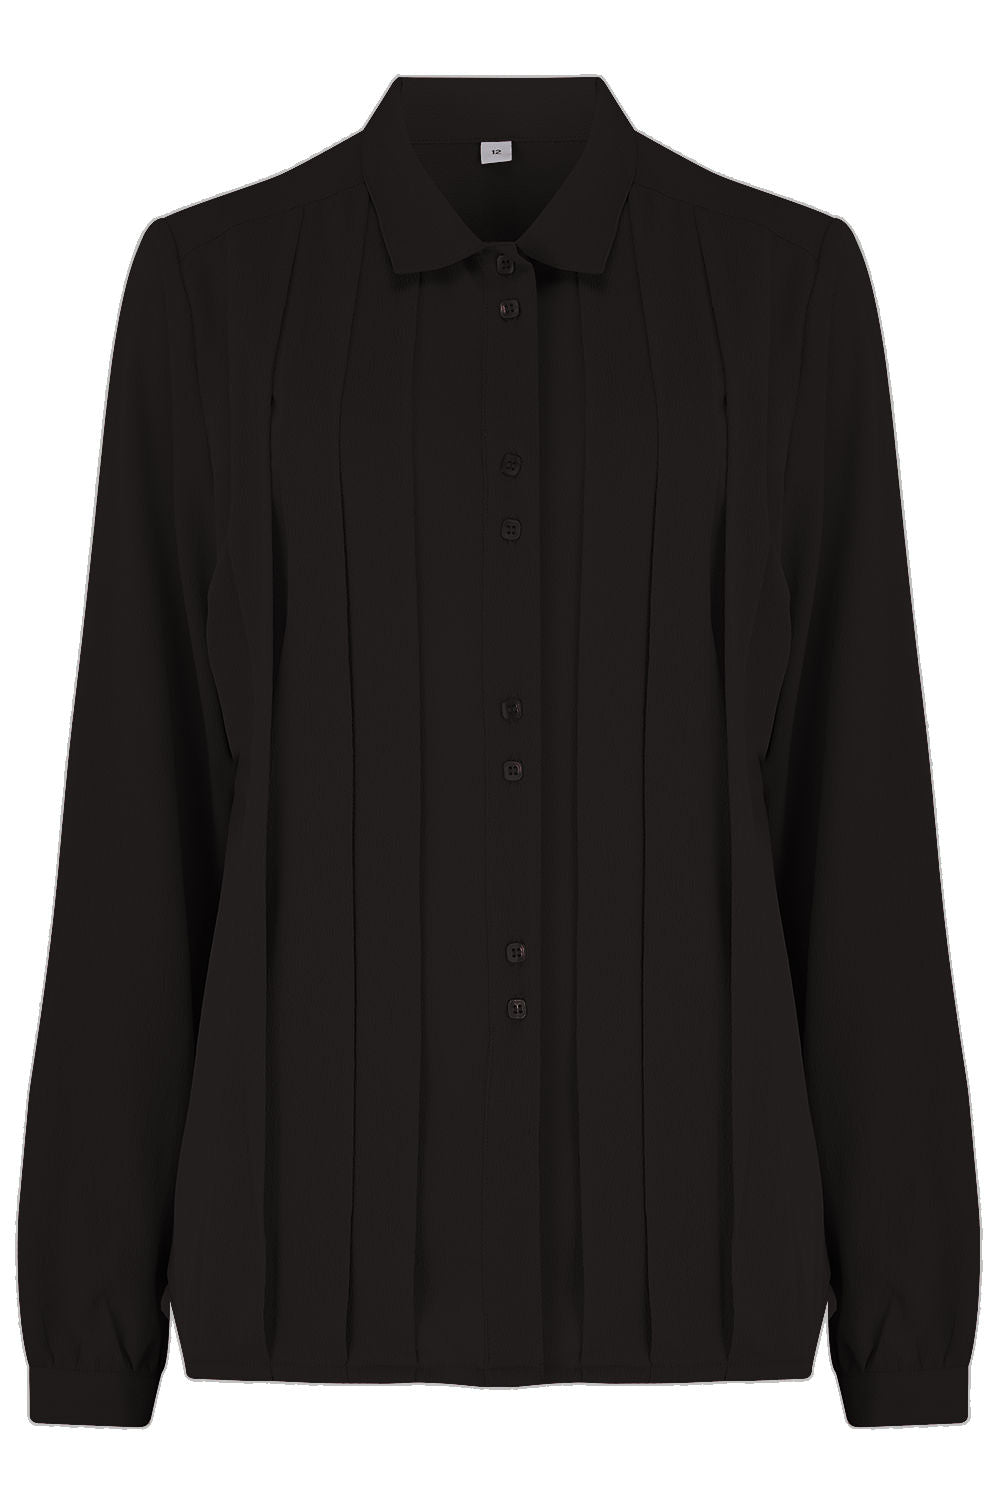 "The ""Lydia"" Long Sleeve, Pleated Front Blouse in Black, True Vintage Style - RocknRomance True 1940s & 1950s Vintage Style"